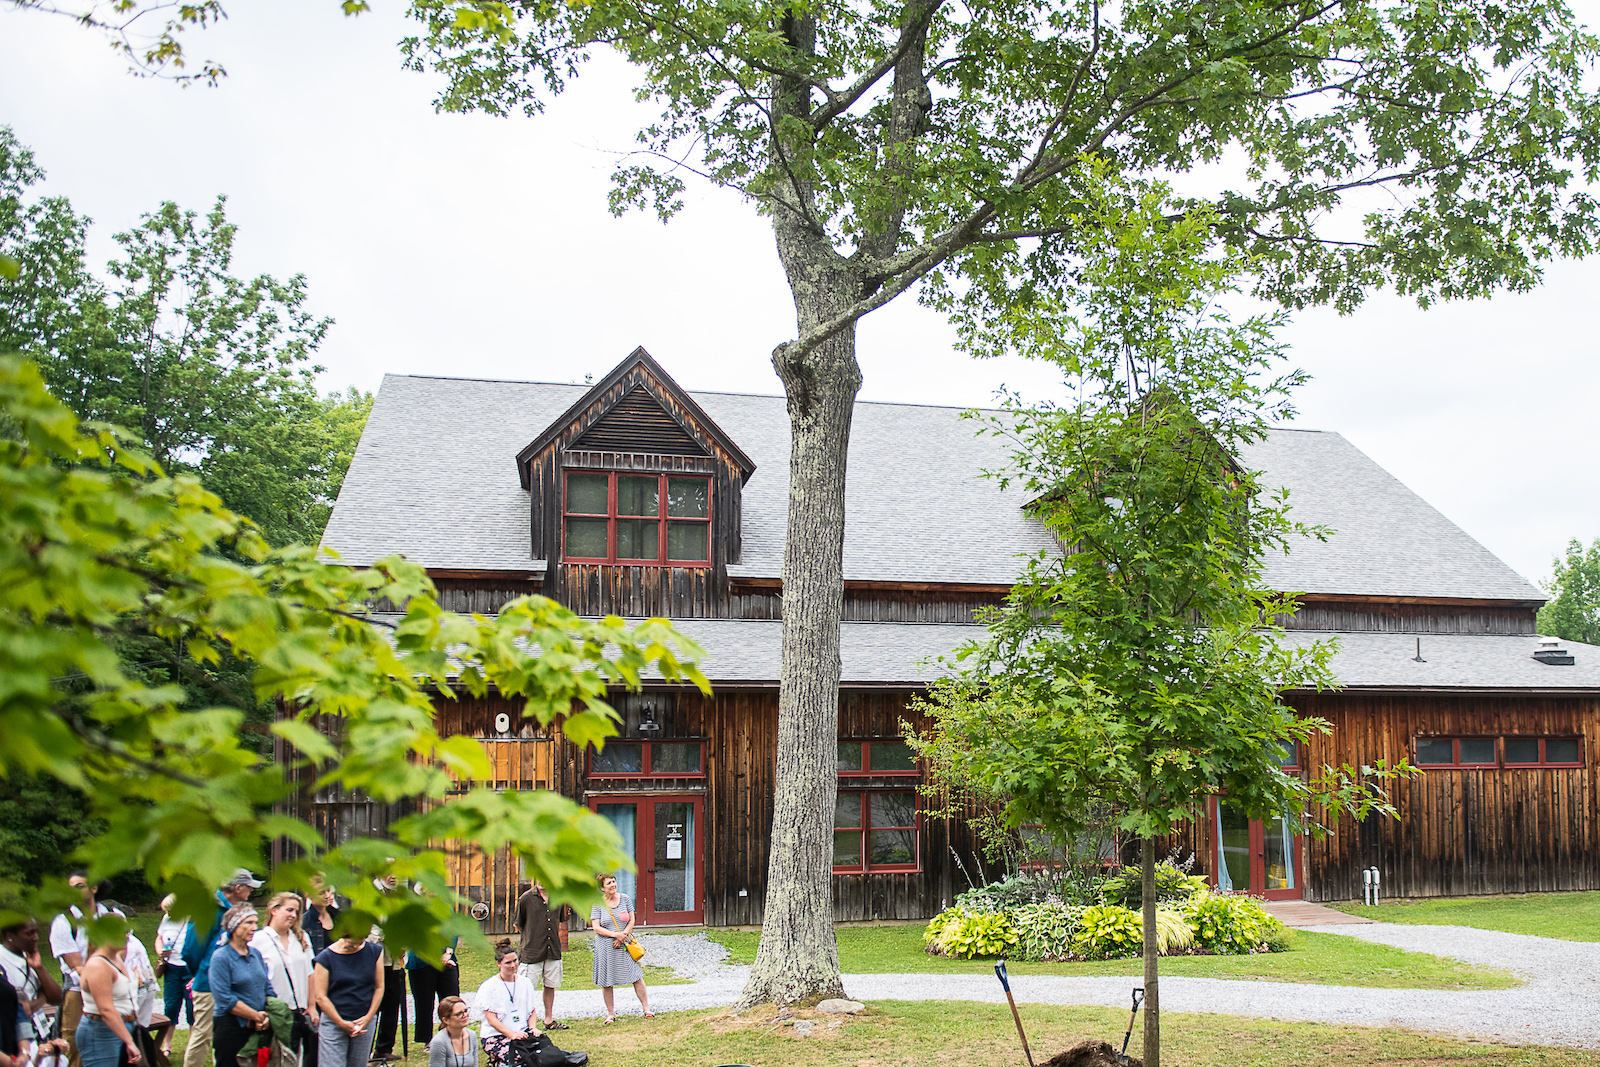 A Fire Has Destroyed a Historic Theater at Jacob's Pillow, the Massachusetts Haven for Avant-Garde Dance | artnet News